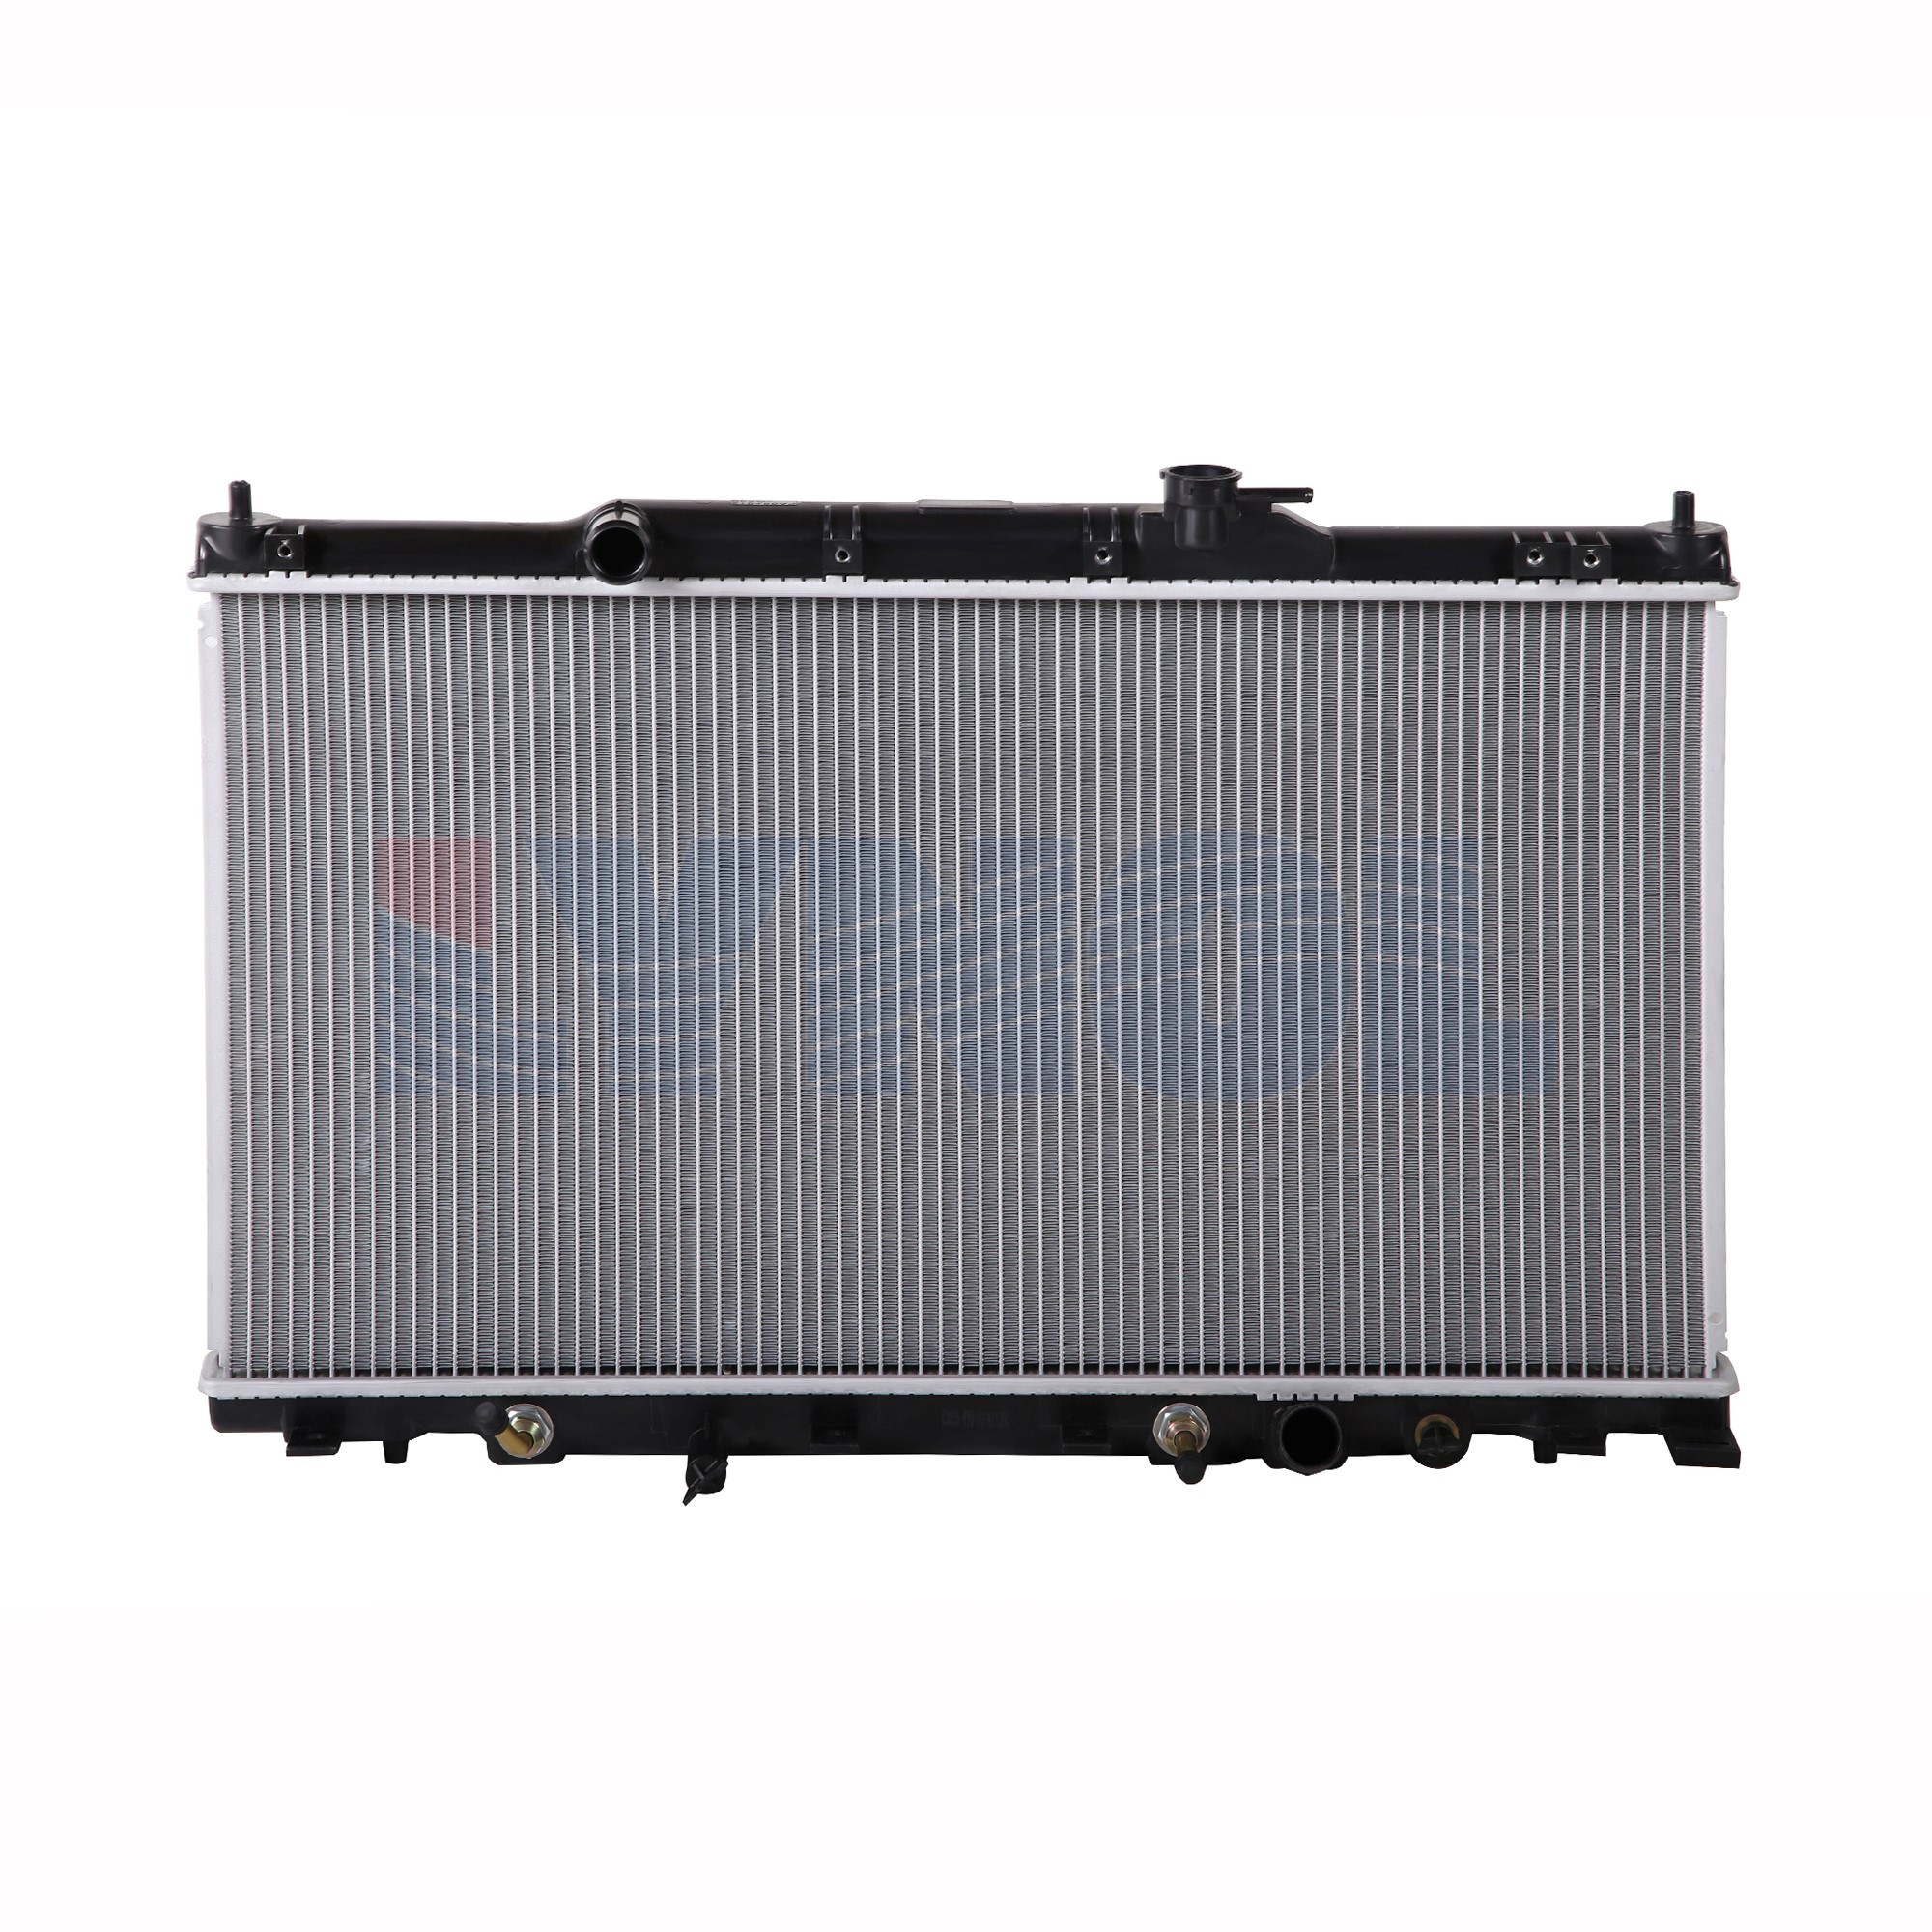 13015 - RADIATOR  - 07-10 Honda Element 2.4 L4